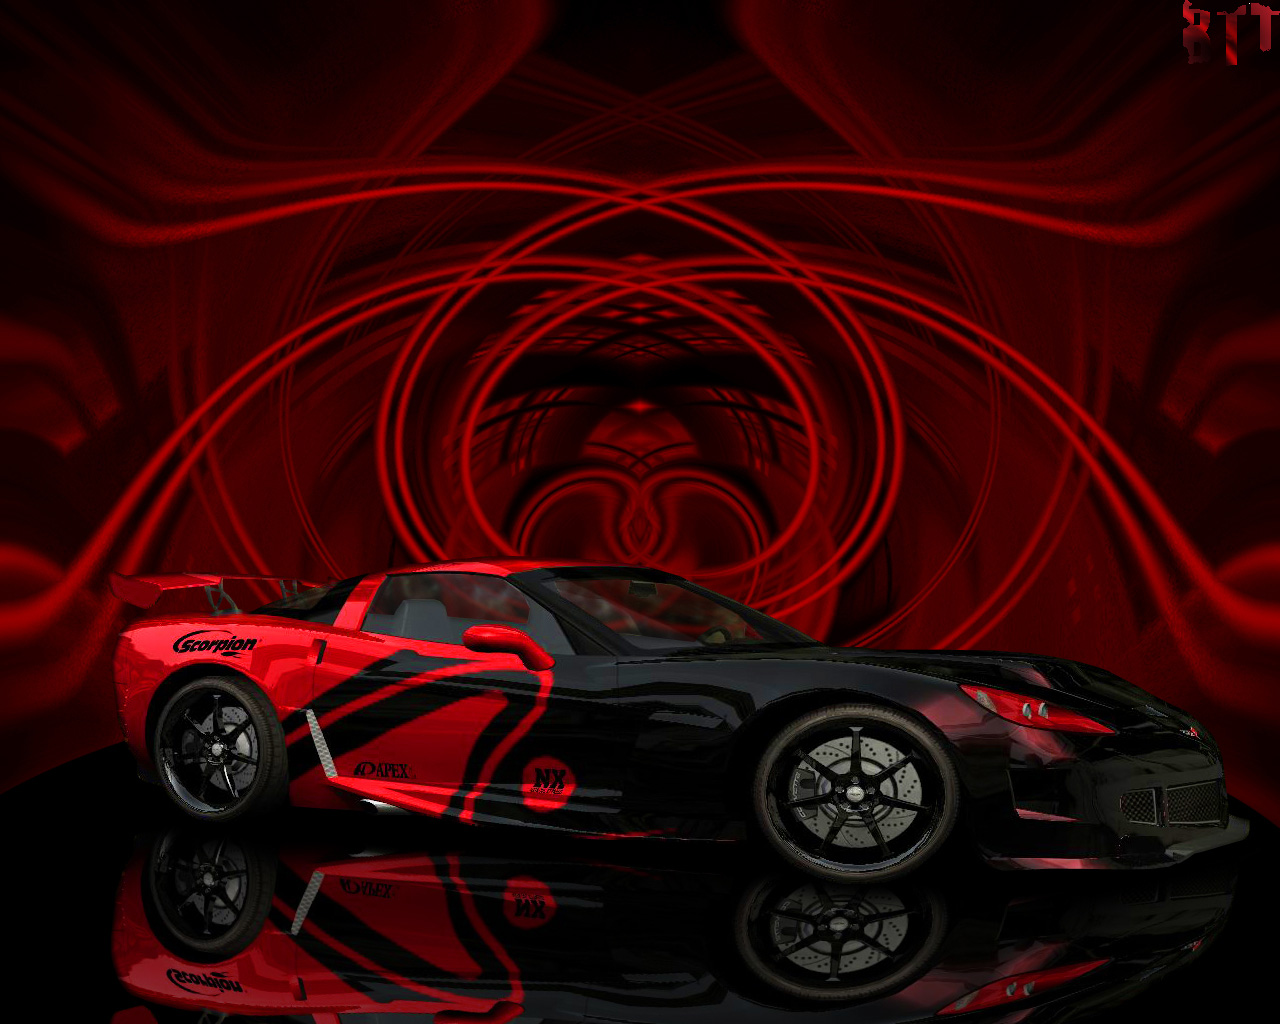 Wallpaper 1280x1024 jpg 06 mb 1920x1080 08 car interior for Black and red wallpaper designs